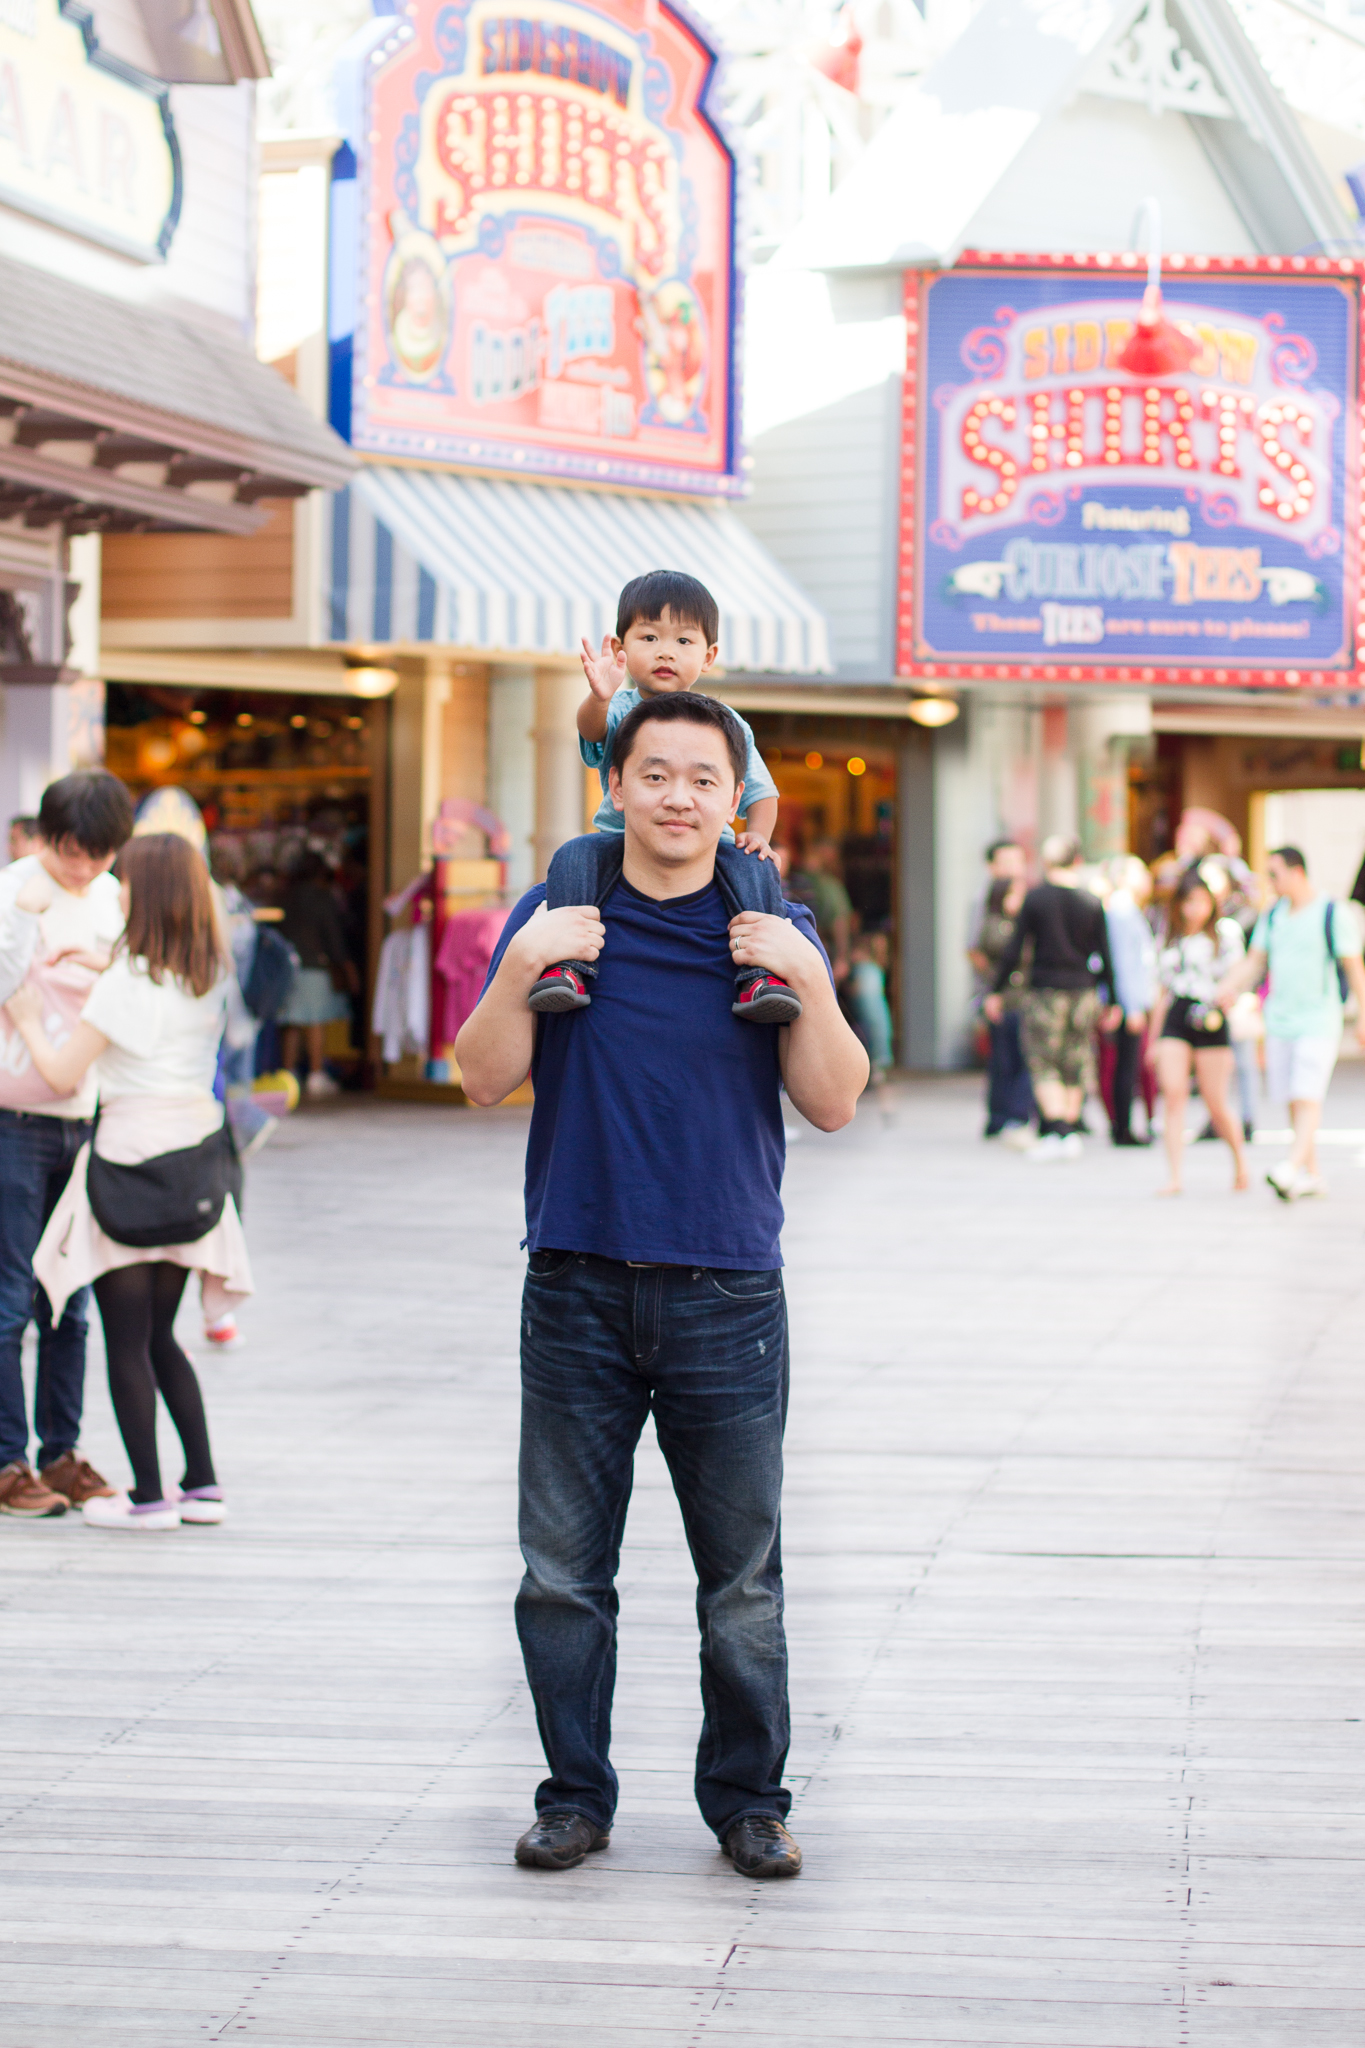 Fun at the pier. This is officially my favorite spot at California Adventure.